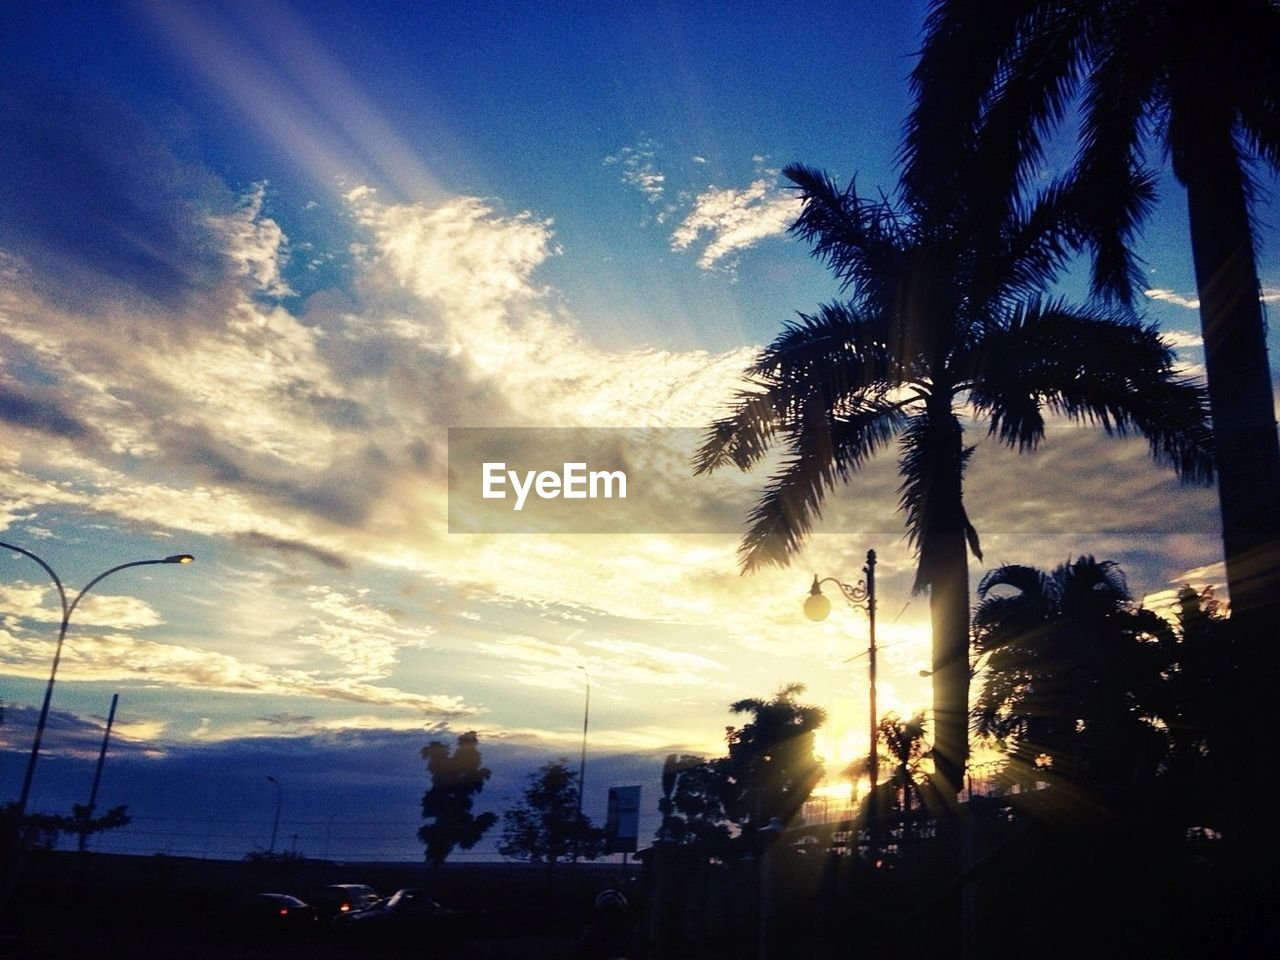 sunset, sky, silhouette, tree, cloud - sky, palm tree, nature, beauty in nature, low angle view, scenics, no people, outdoors, growth, day